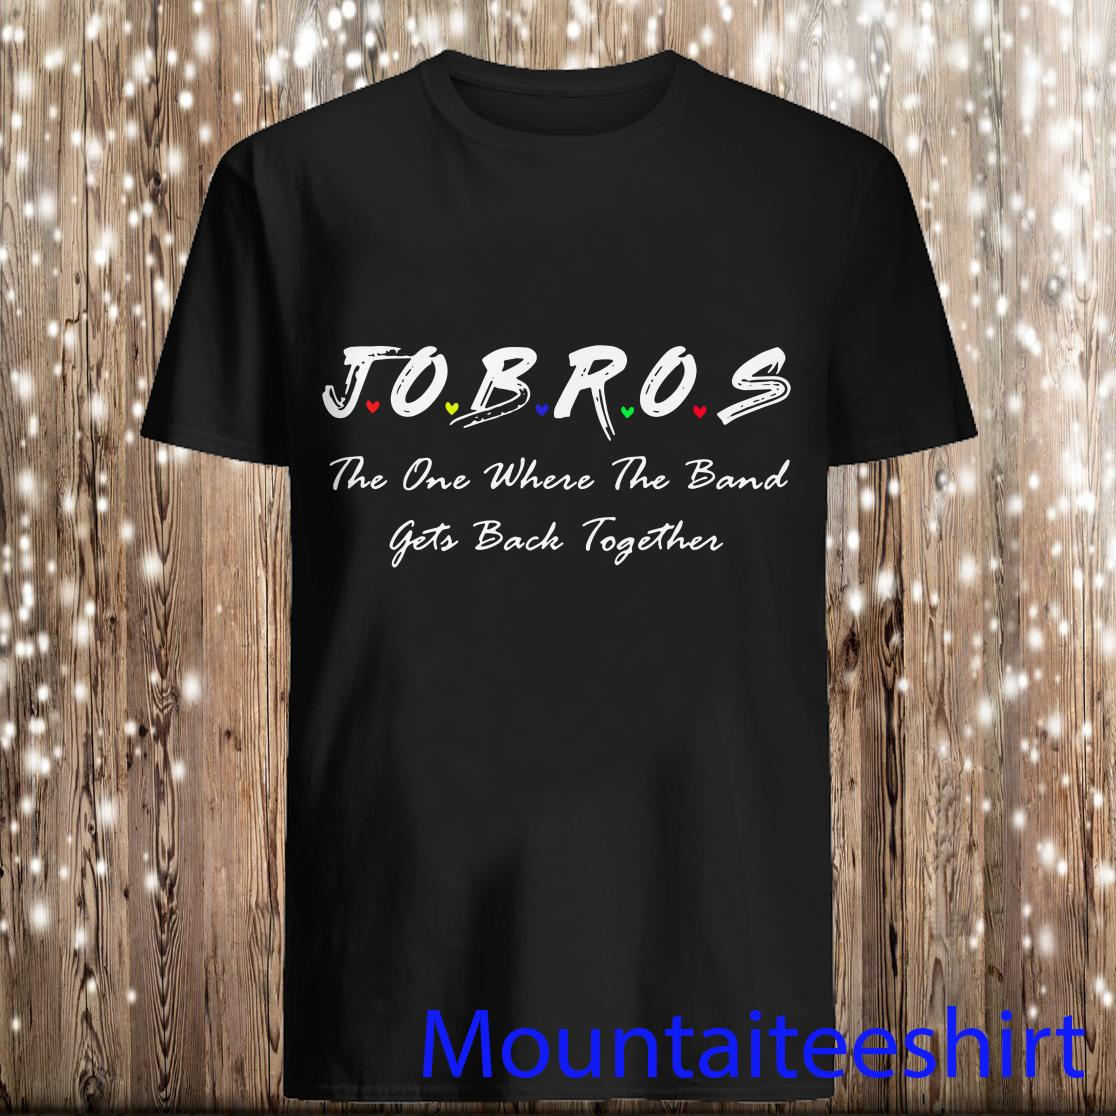 Jobros The One Where The Band Get Back Together Shirt